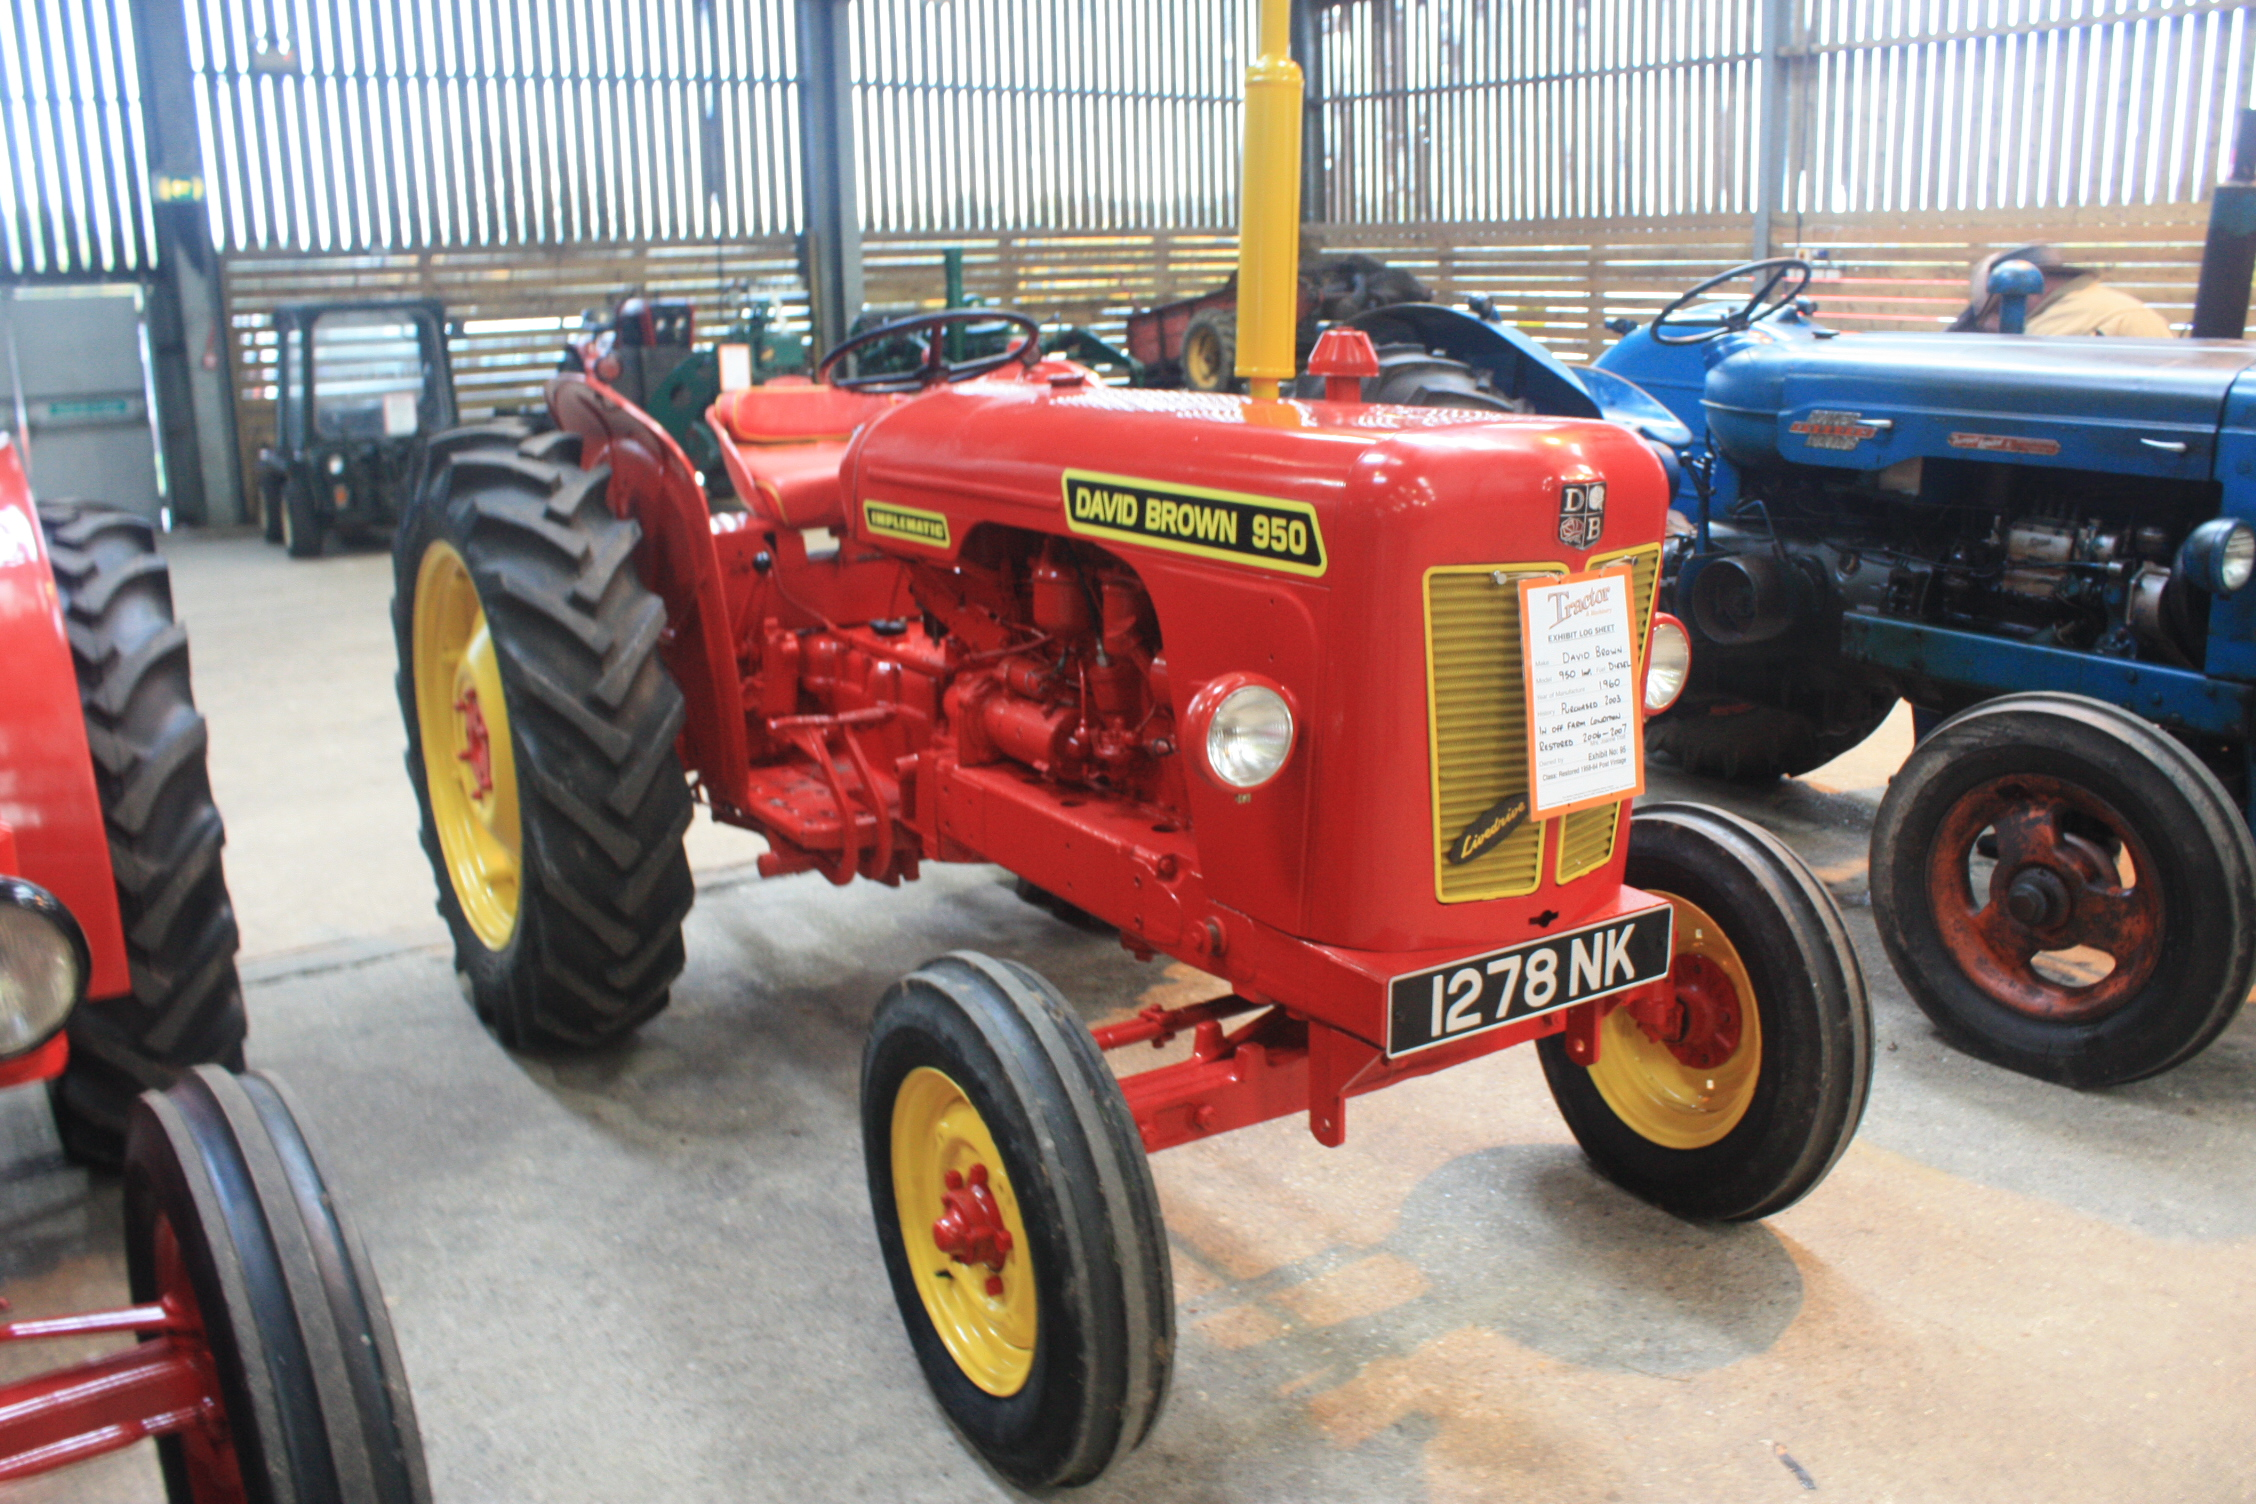 david brown | tractor & construction plant wiki | fandom powered by wikia